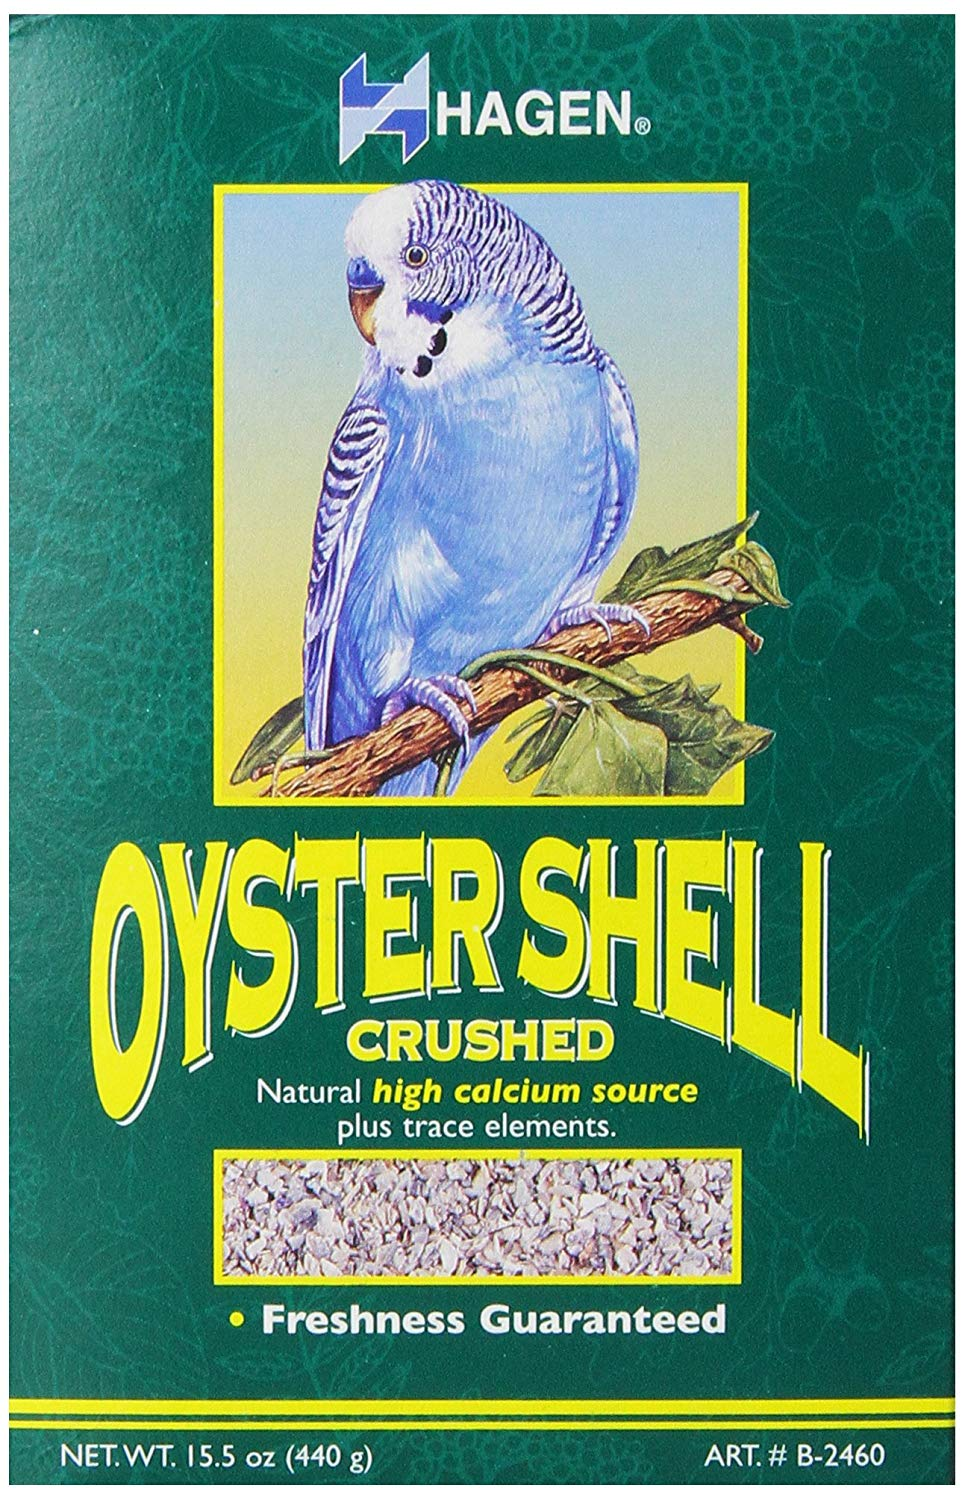 Hagen Crushed Oyster Shell Bird Food Image